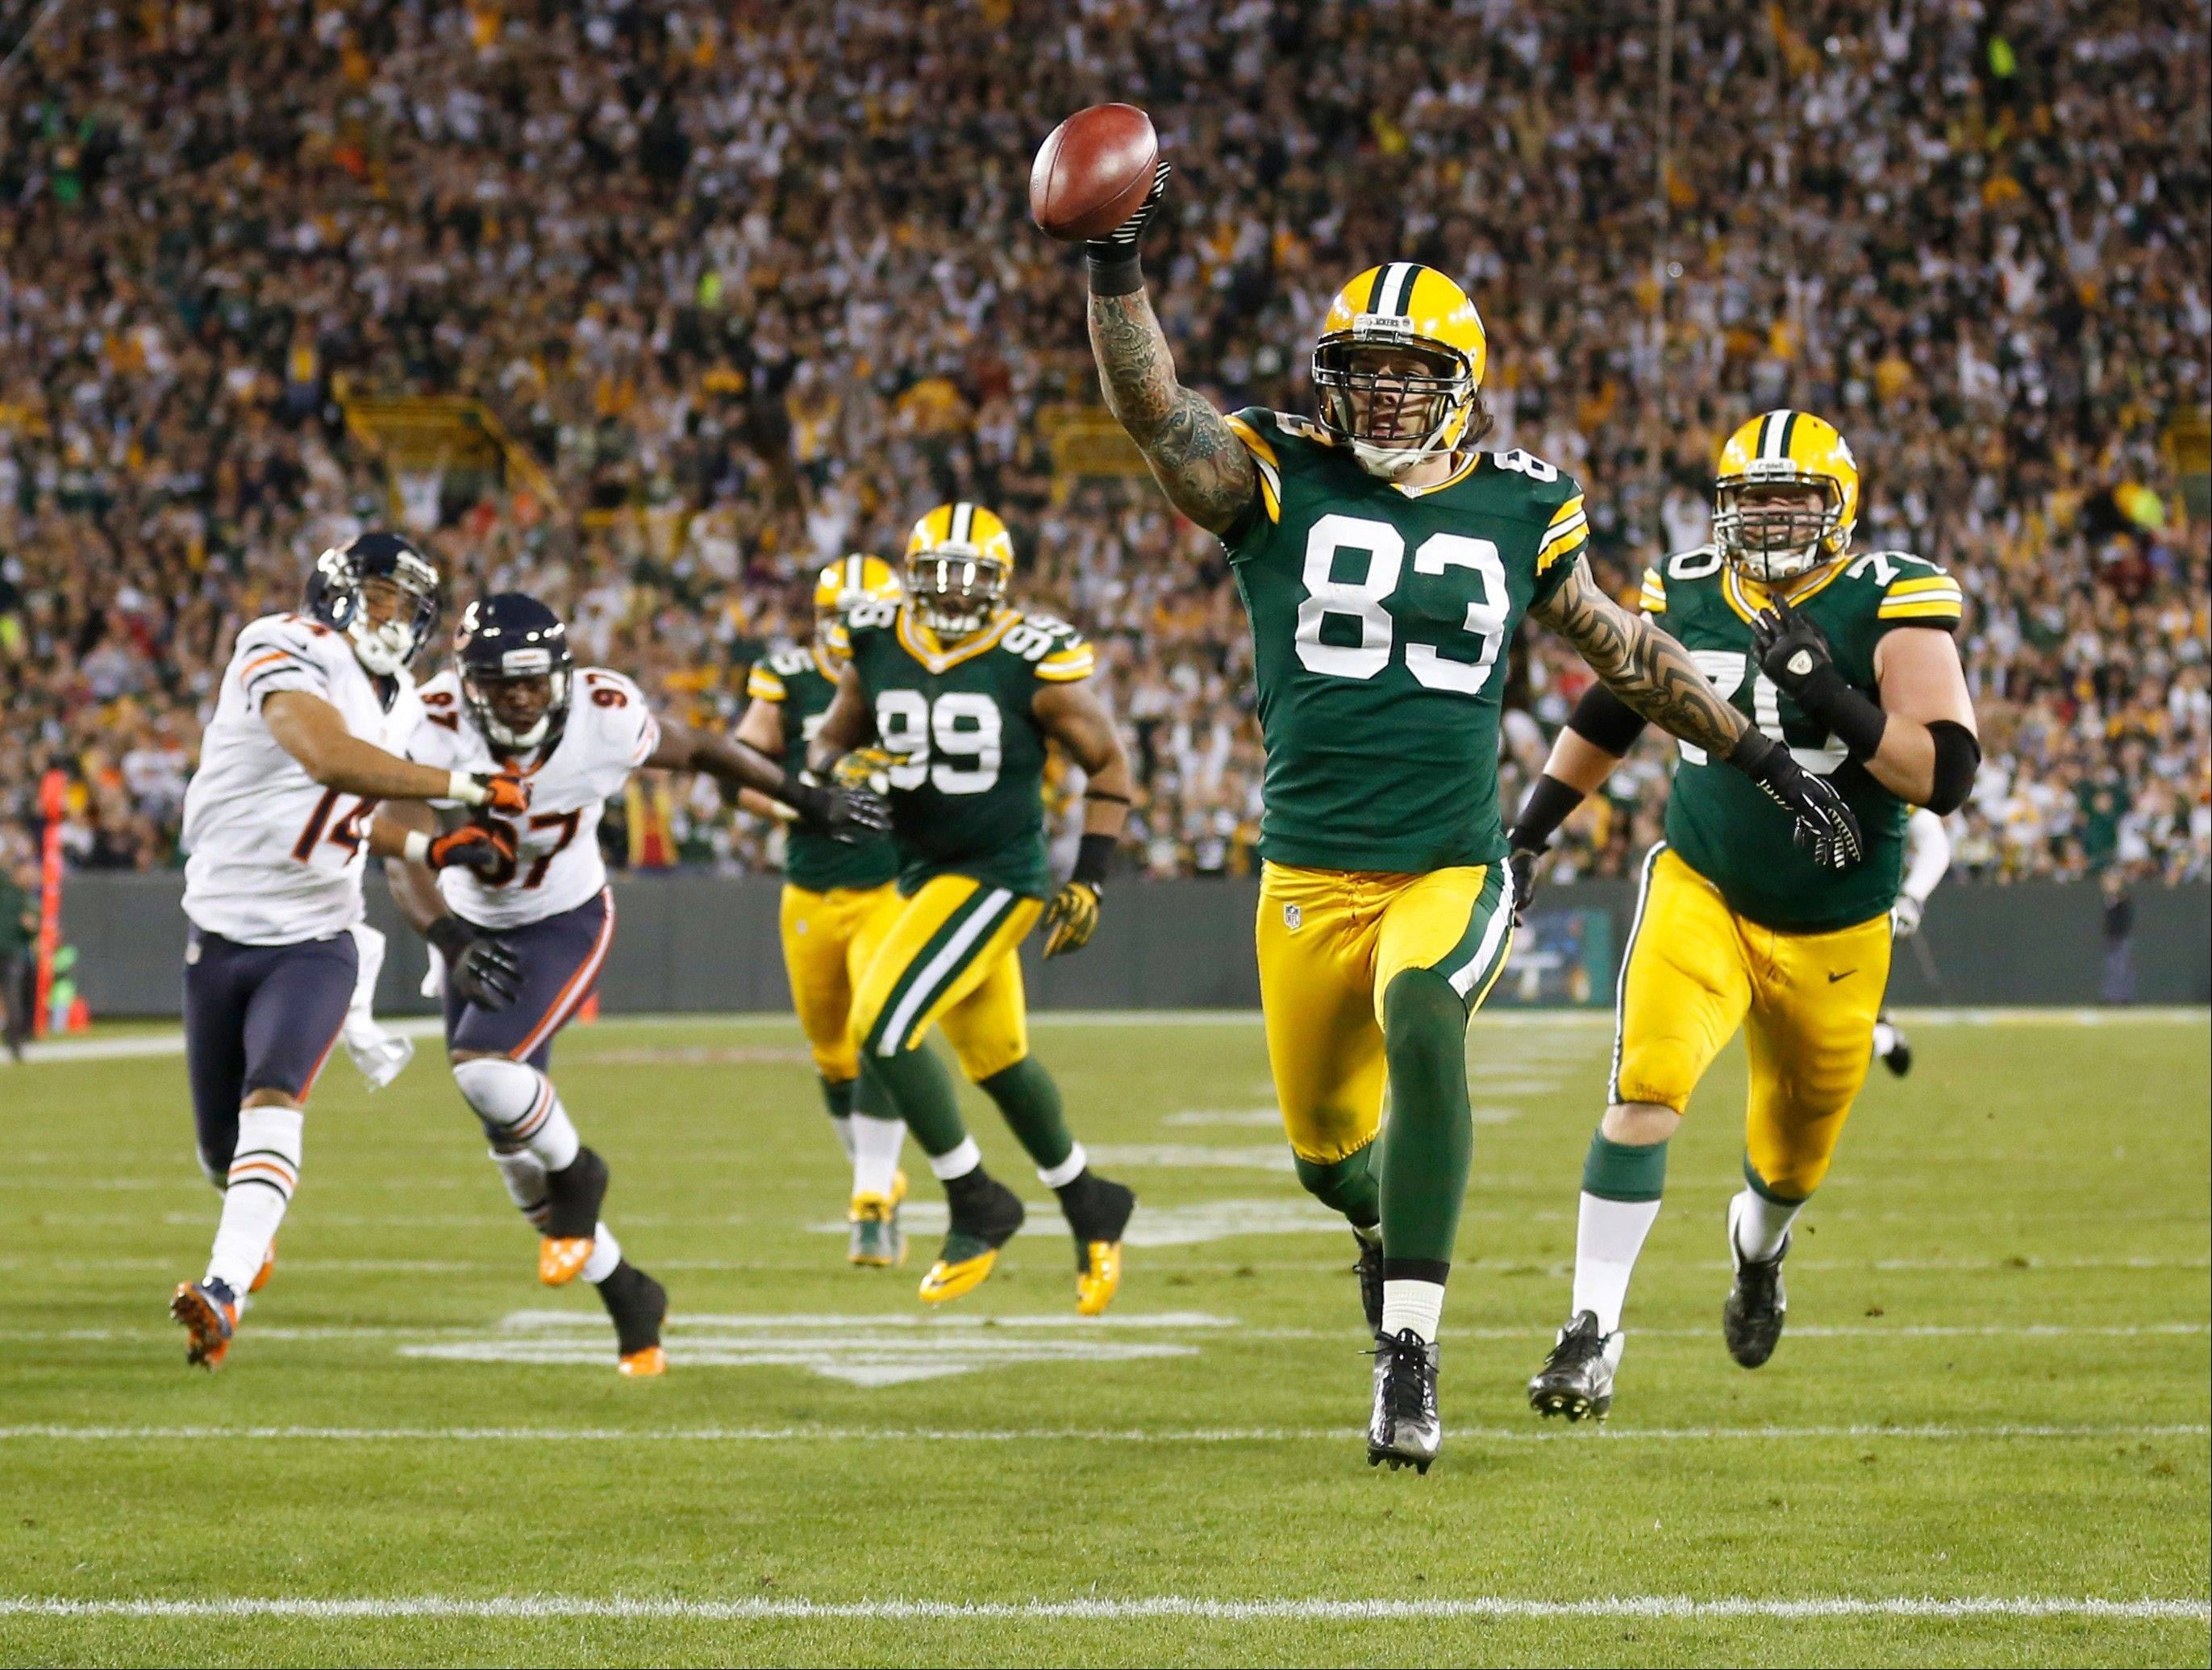 Green Bay Packers' Tom Crabtree celebrates as he scores a touchdown on a pass from punter Tim Masthay during the first half.